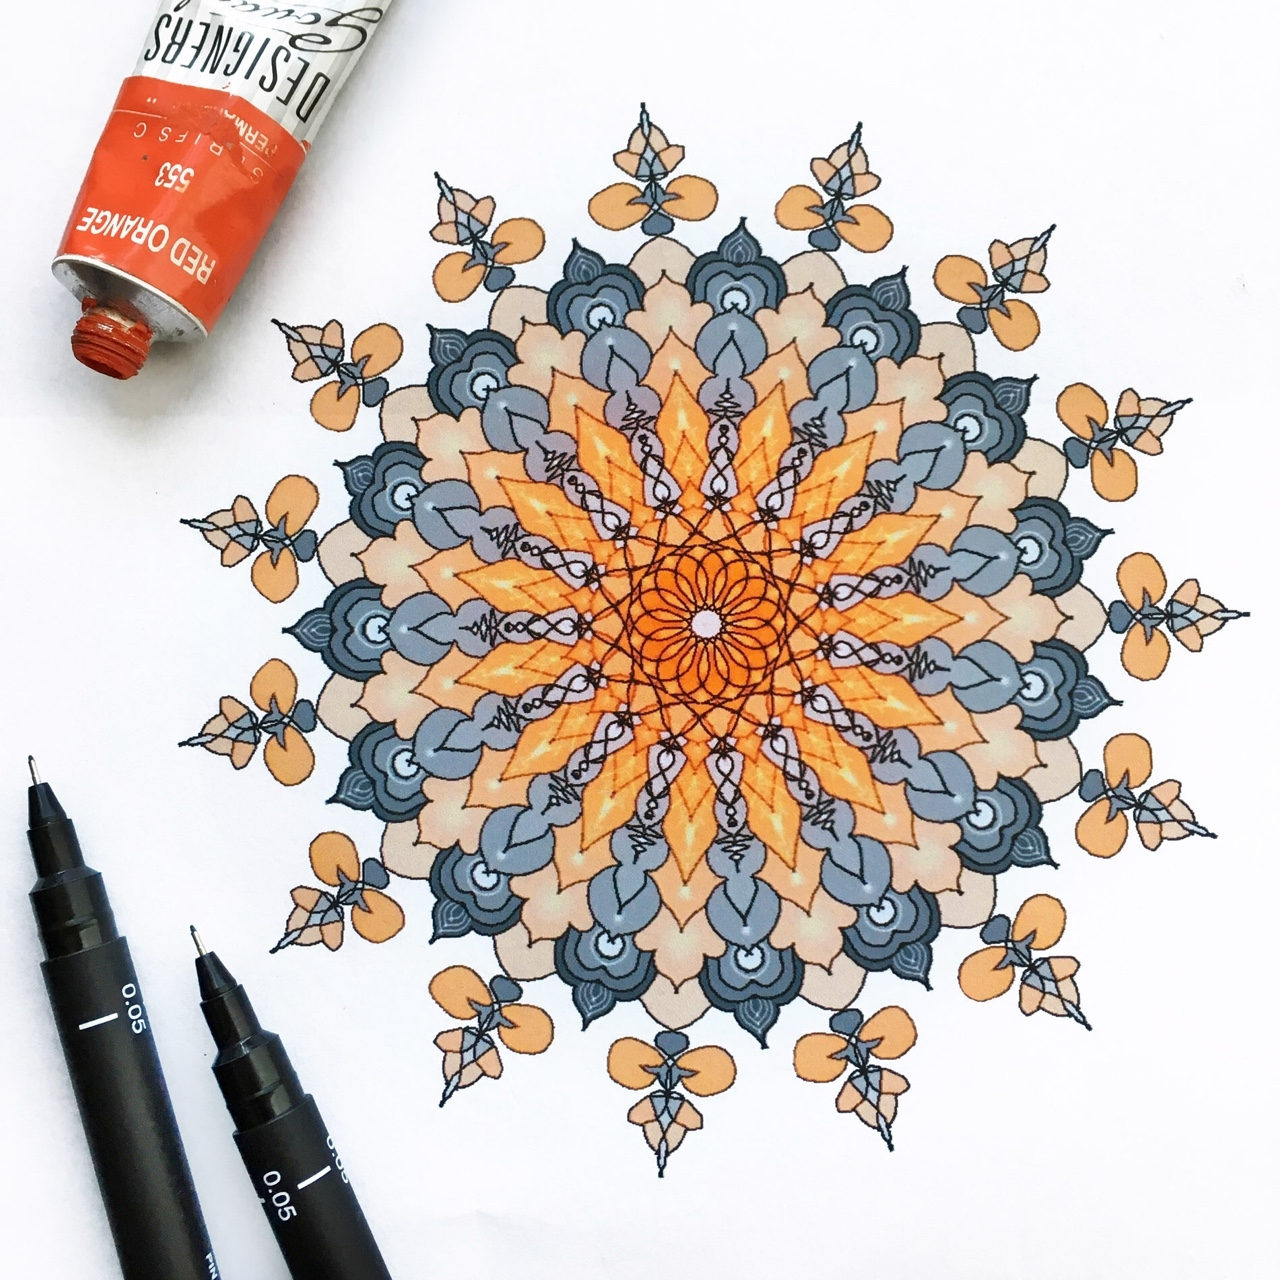 12-Orange-Chakra-Dilrani-Kauris-Symmetry-and-Style-in-Mandala-and-Mehndi-Drawings-www-designstack-co